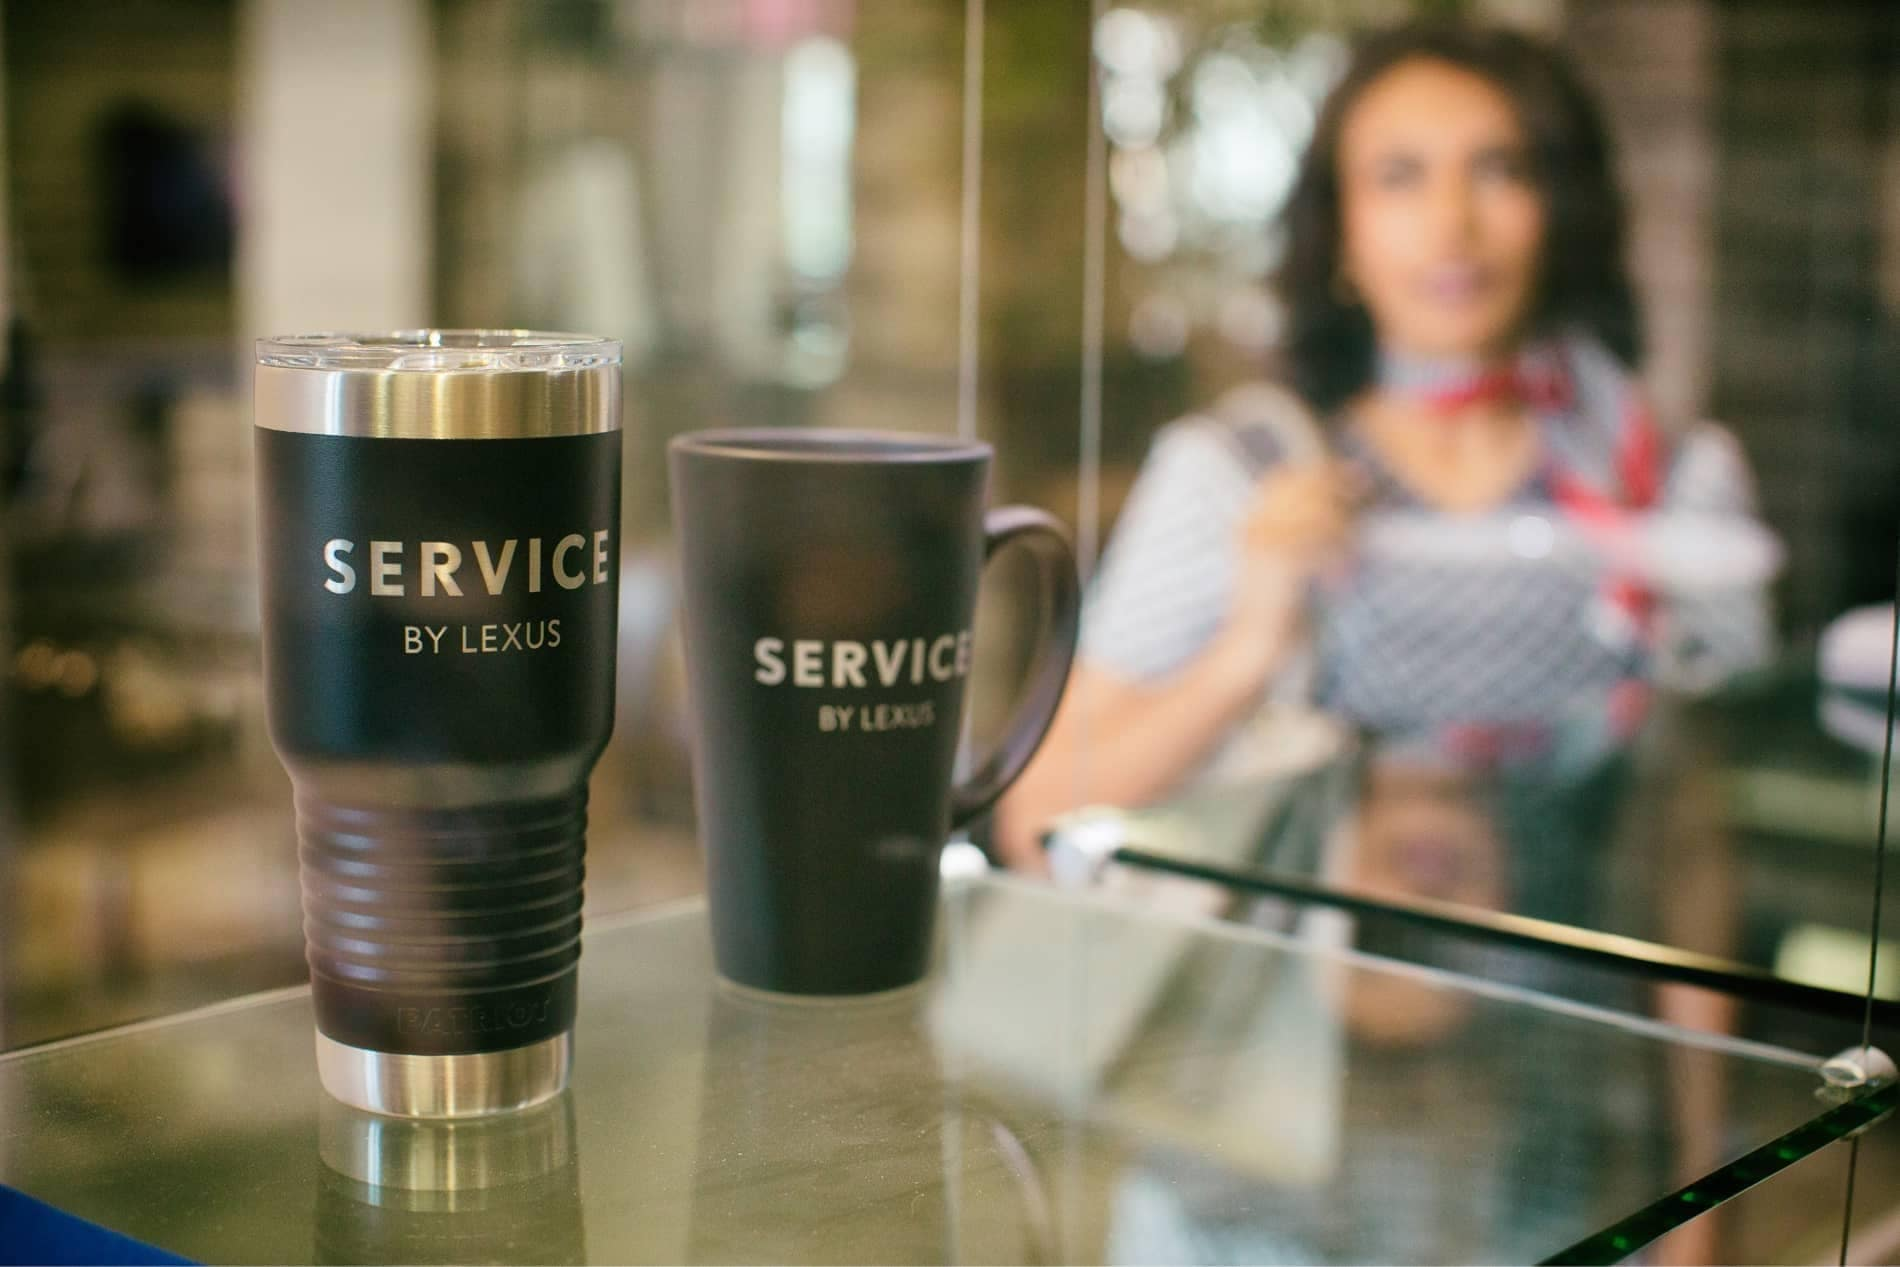 Service by Lexus coffee mug and thermos